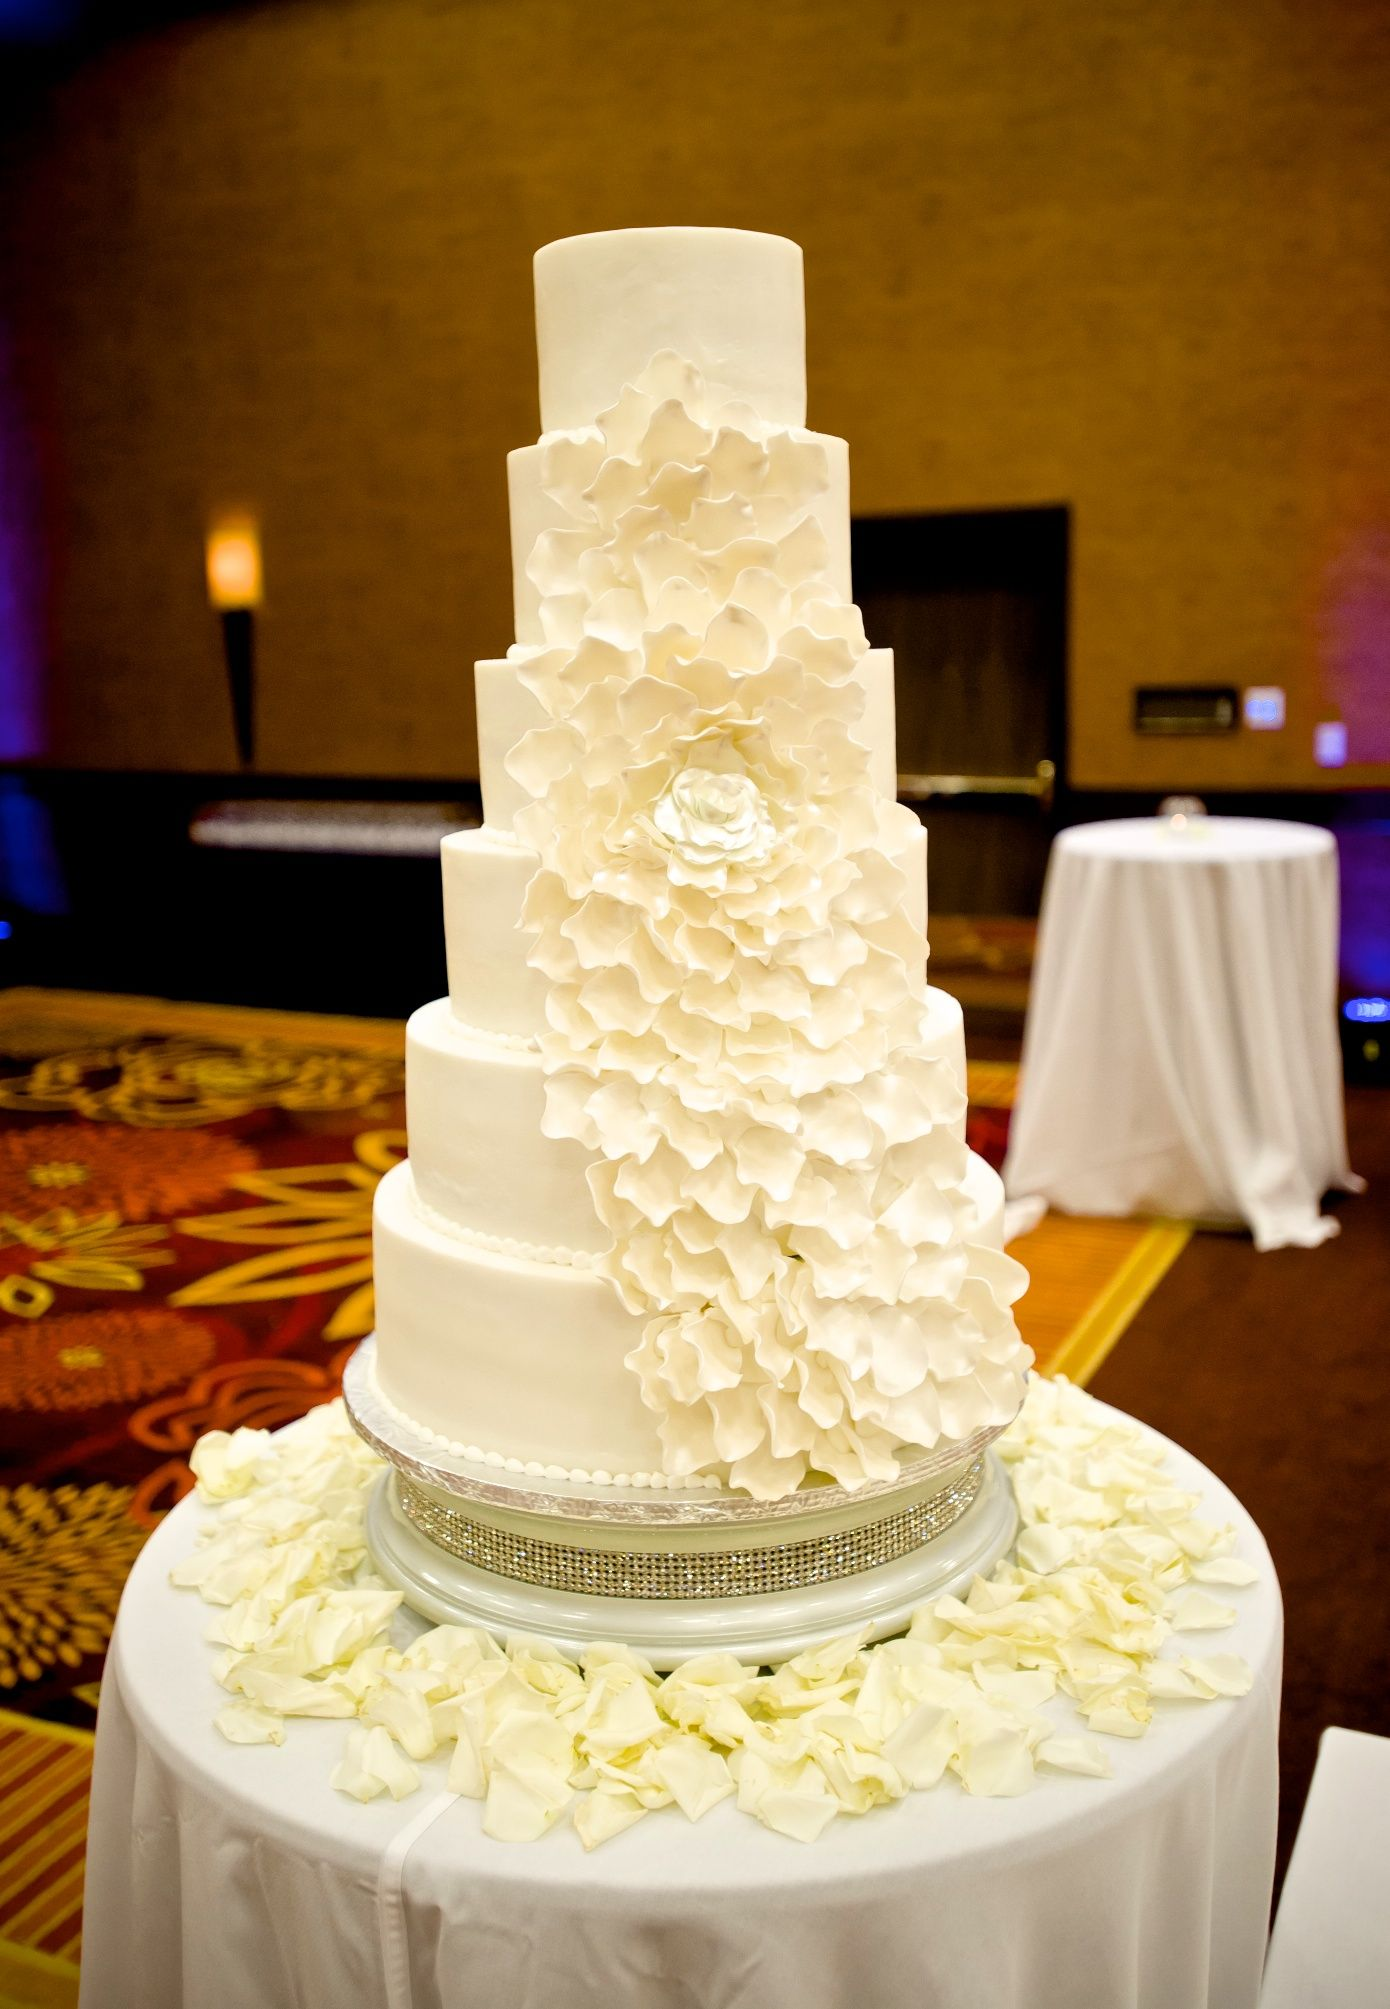 6 tiered flower cake | Social Butterfly: Cakes | Pinterest | Wedding ...